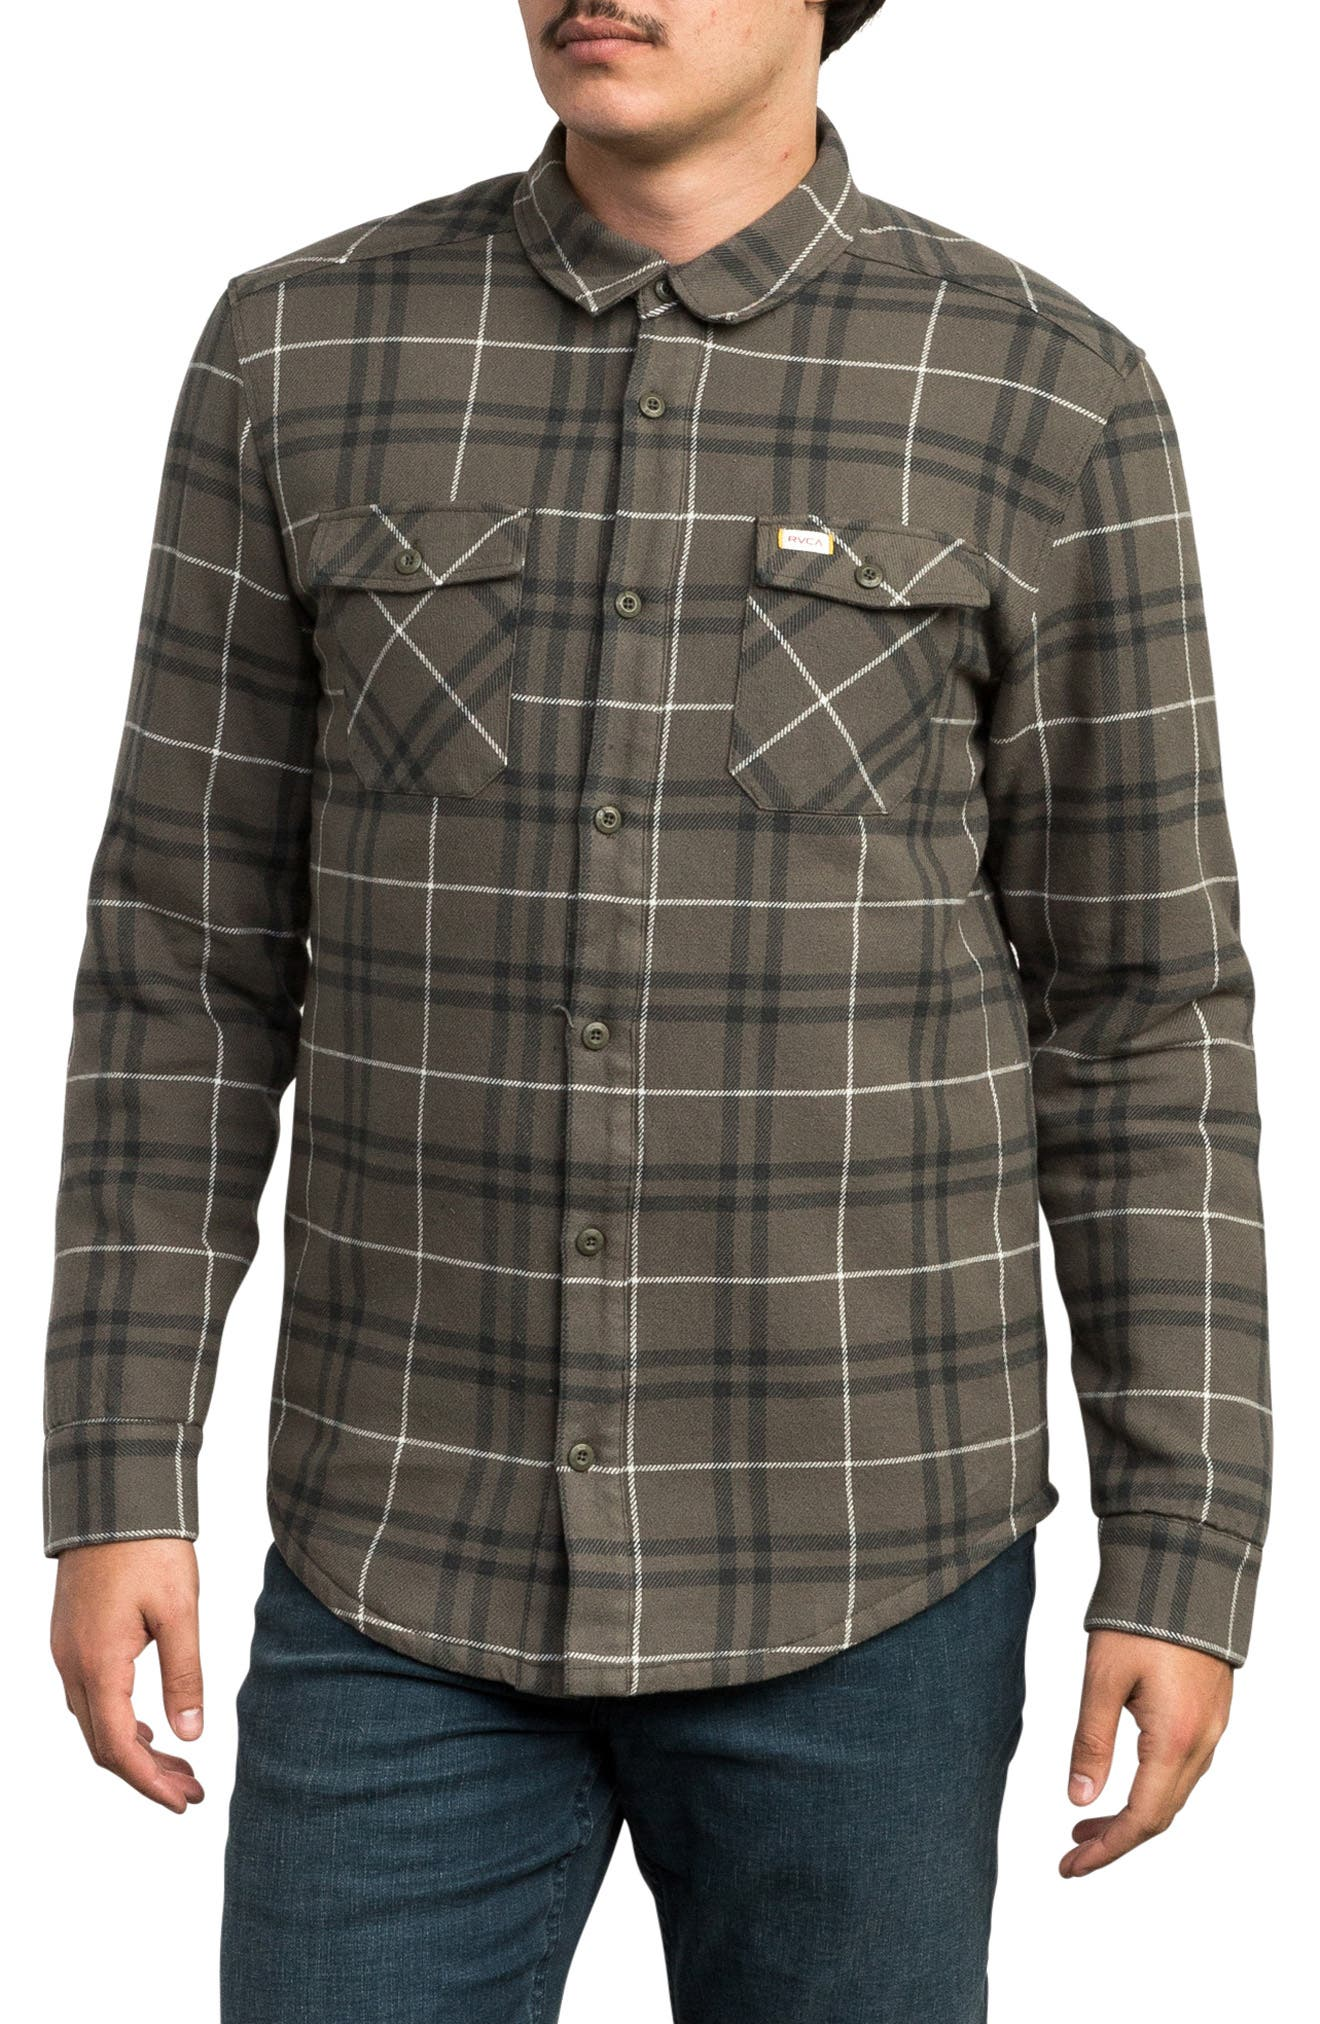 Andrew Reynolds Lined Plaid Shirt,                         Main,                         color, OLIVE